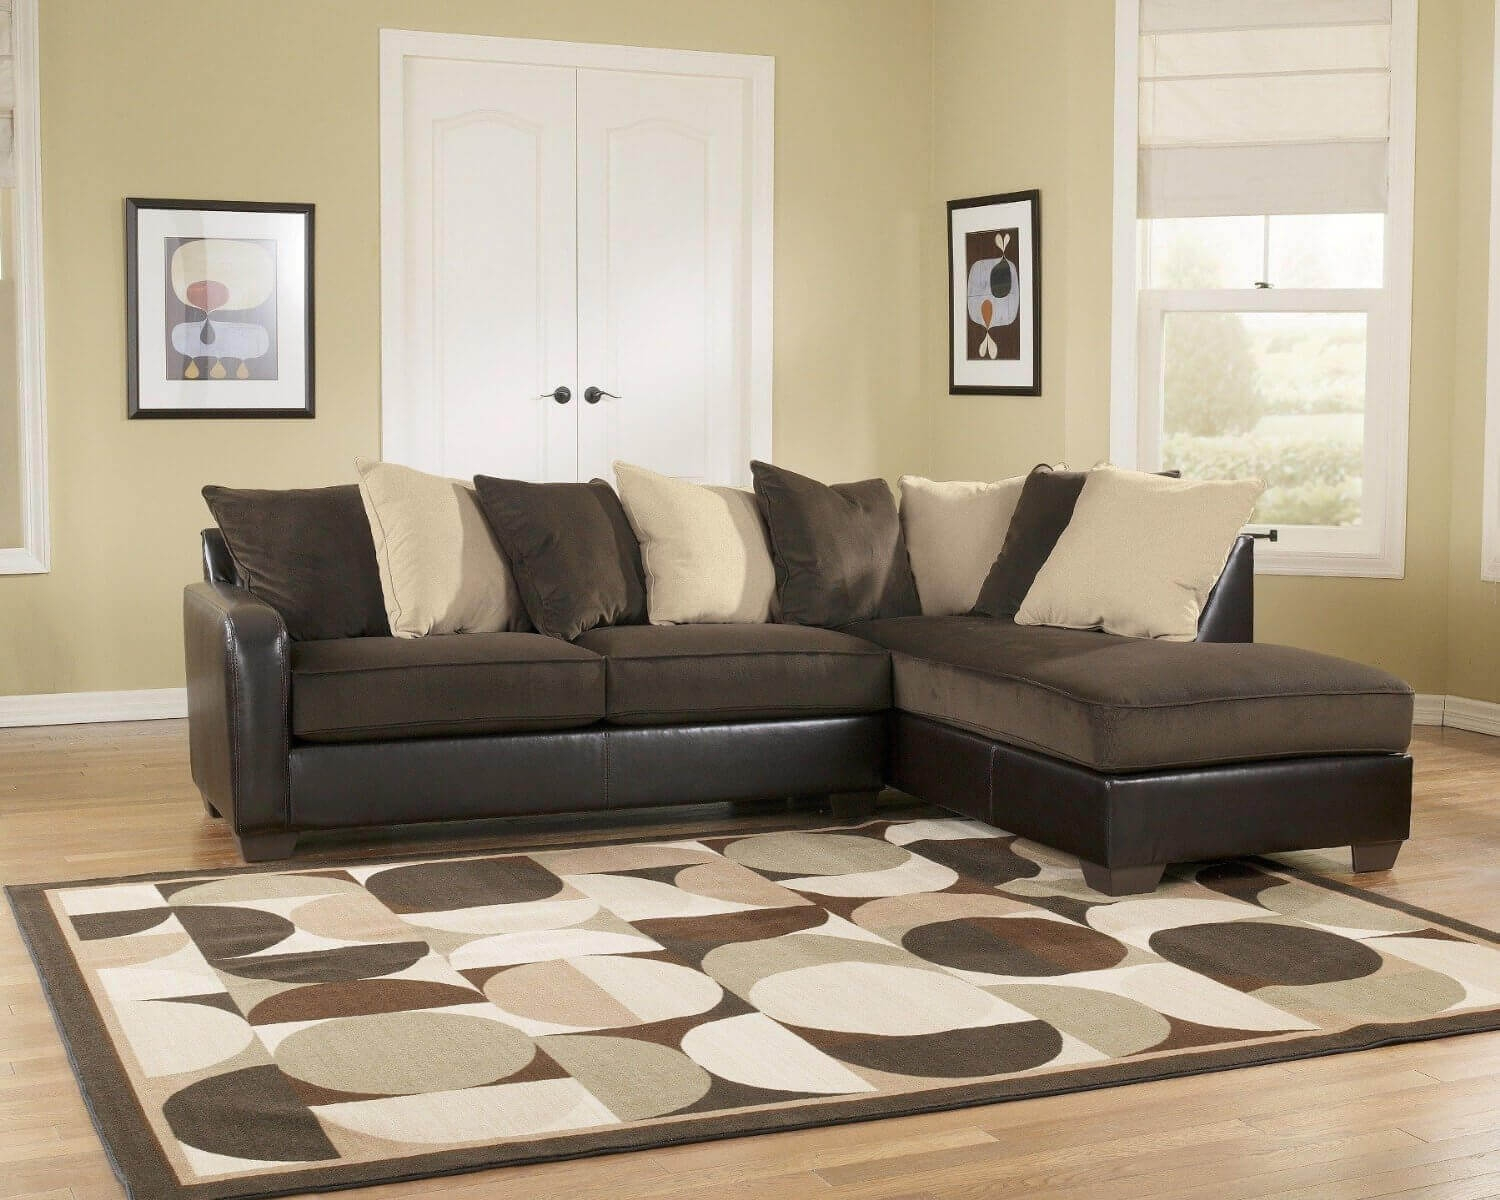 100 Beautiful Sectional Sofas Under 1000 Inside Chocolate Brown Sectional Sofa (View 4 of 15)